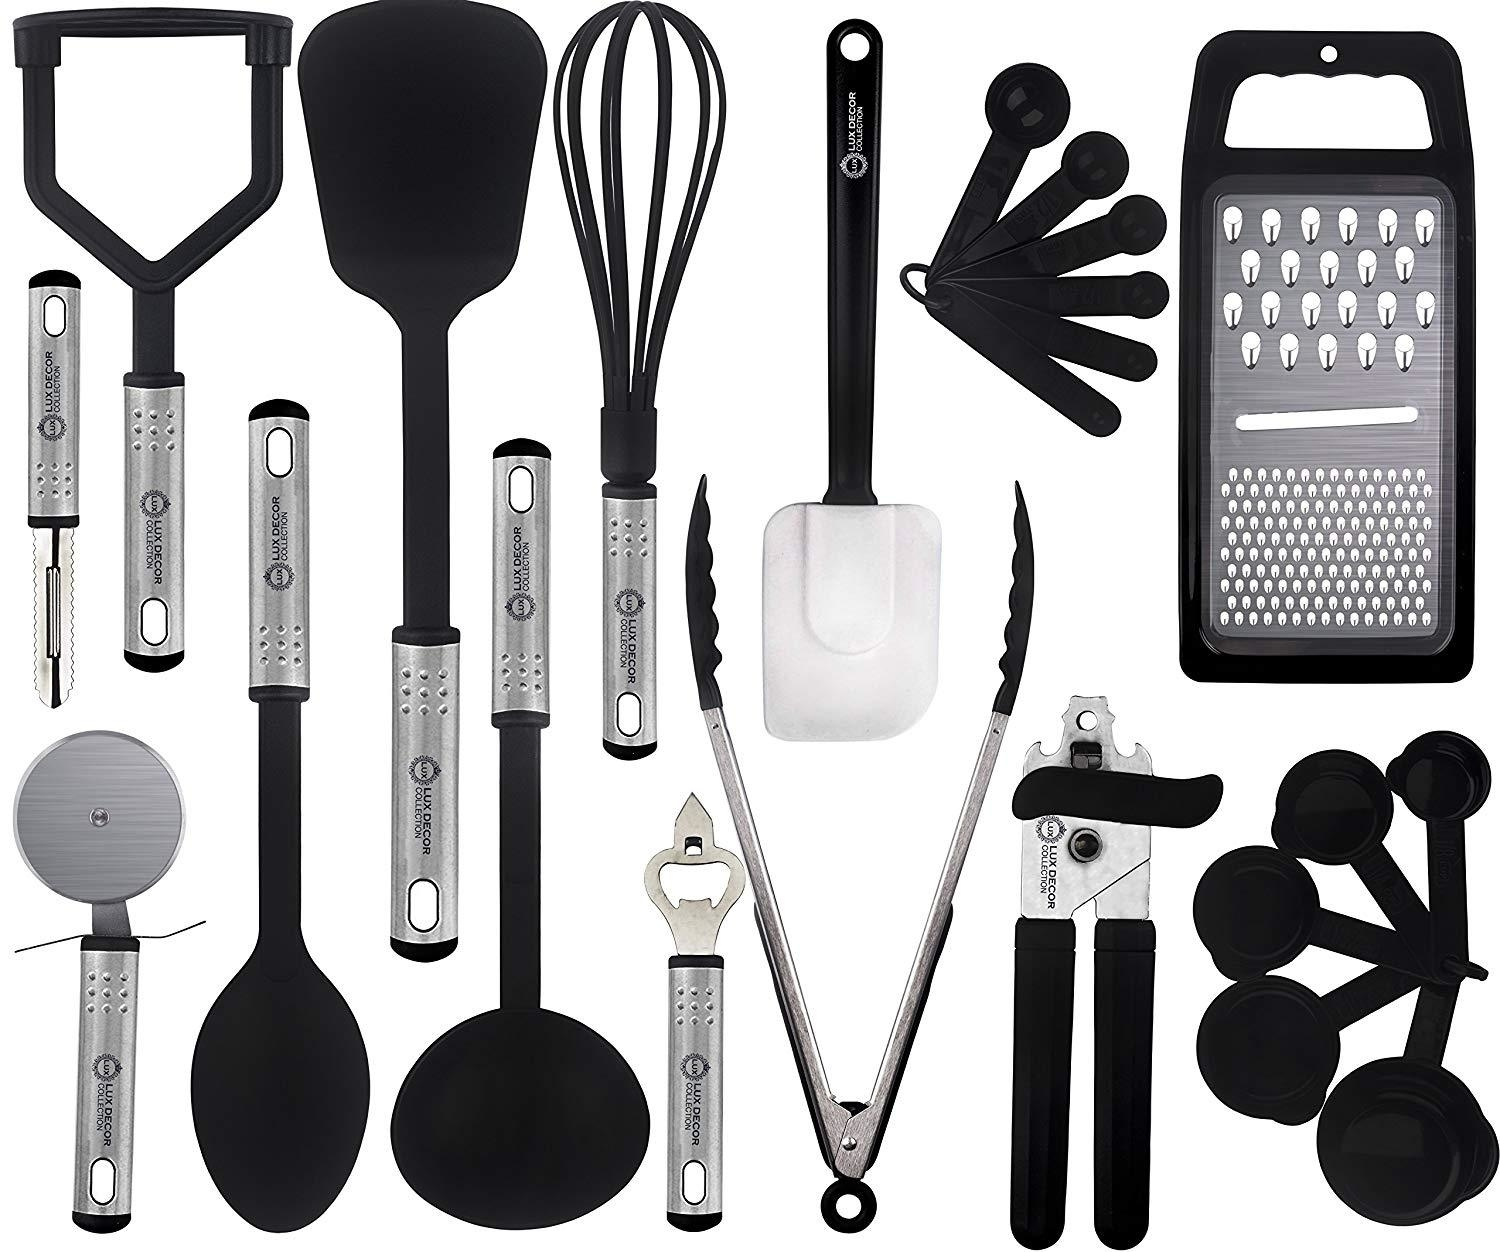 Cooking Utensils Set – 23 Pieces – Nylon Kitchen Utensils/Gadgets/Cookware Sets – By Lux Décor Collection